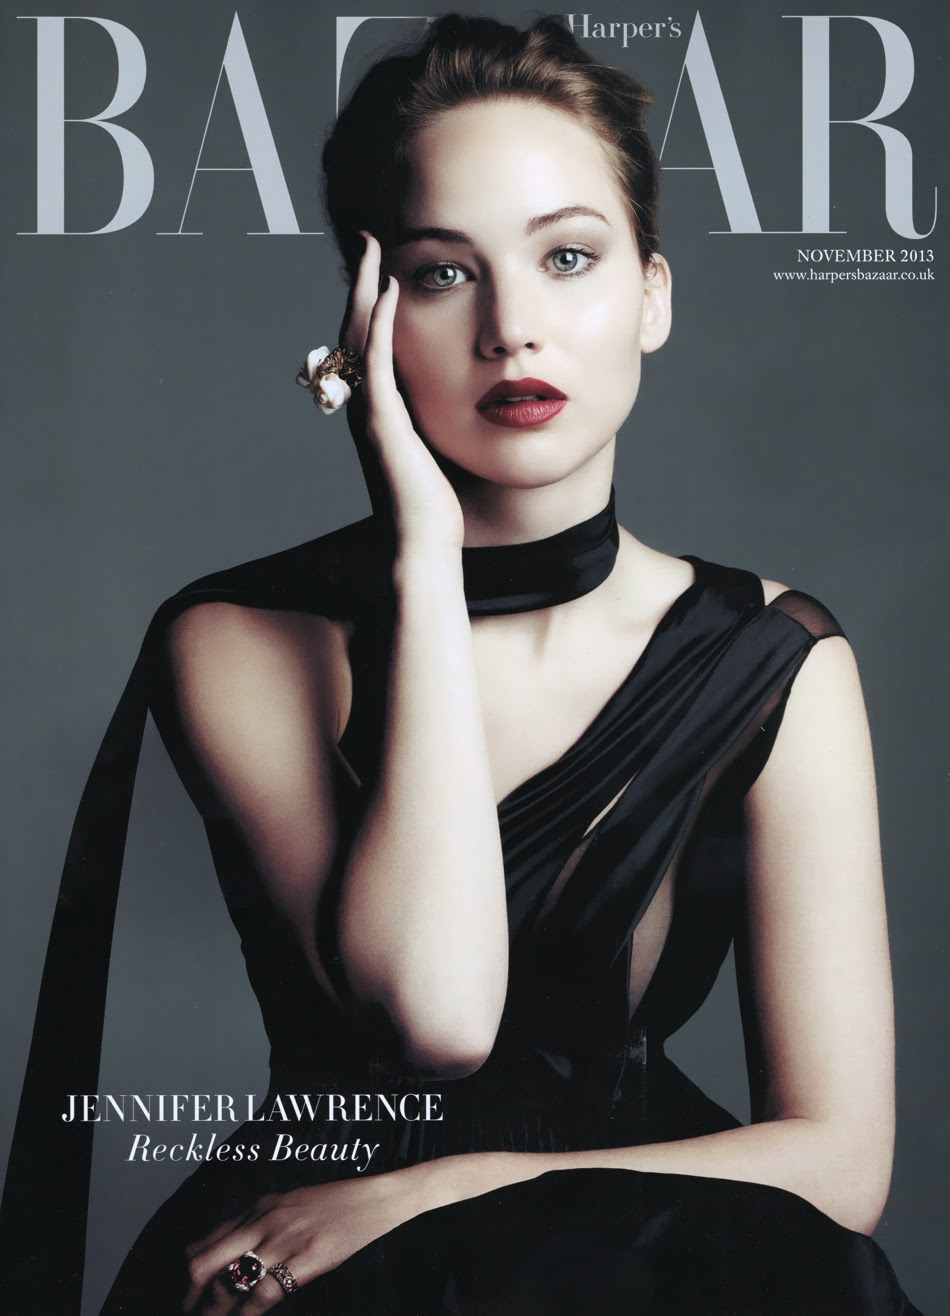 harpers bazaar uk jennifer lawrence